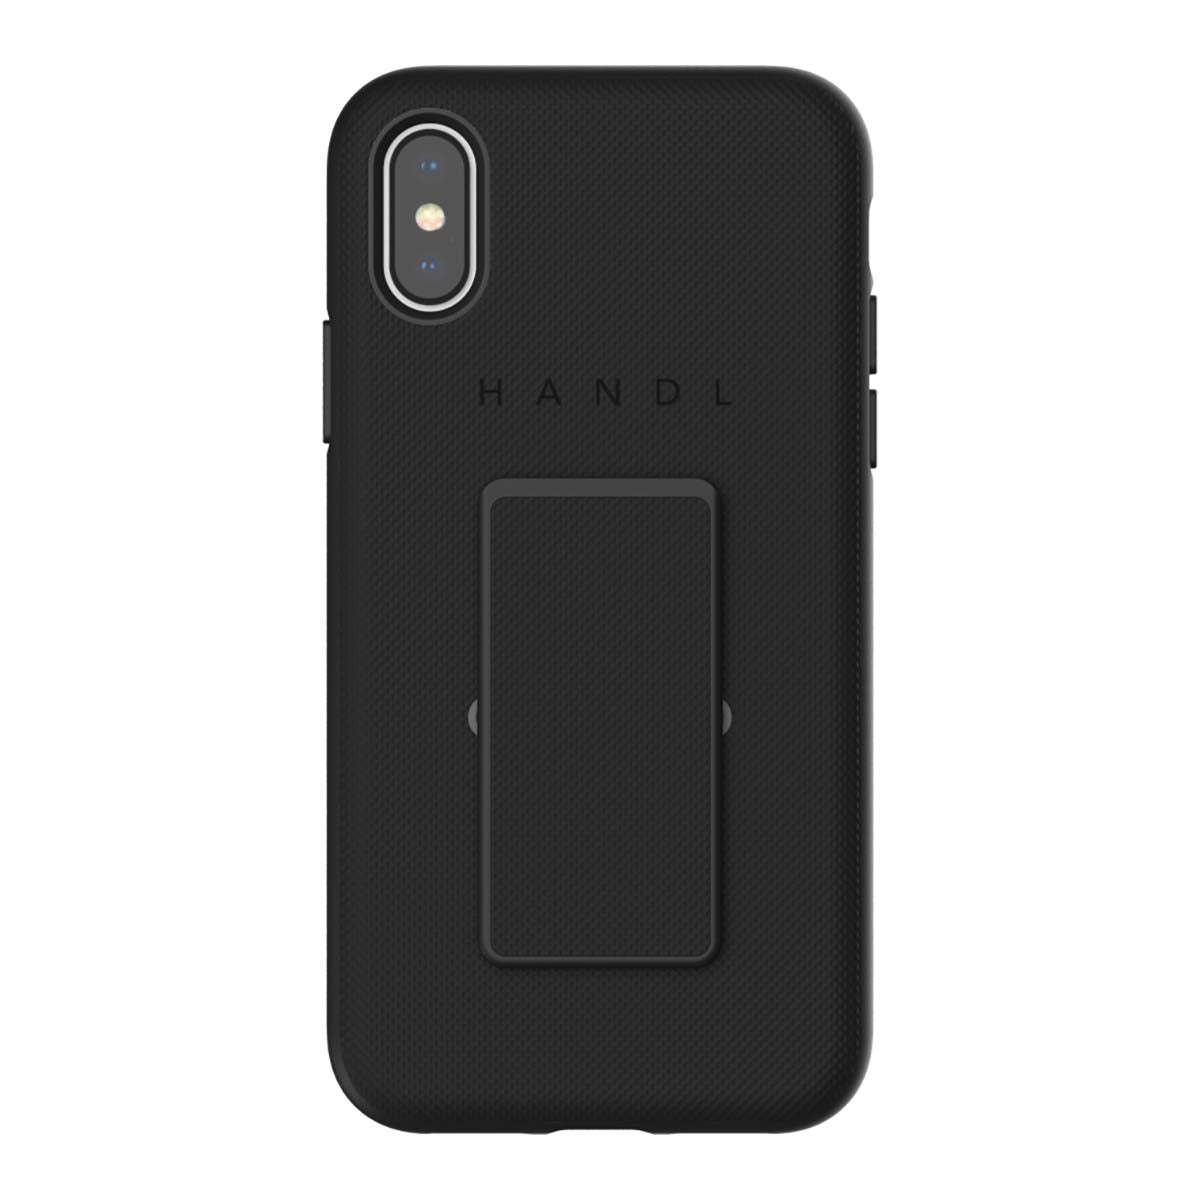 HANDL_iPhoneXS-GRIPPY_BLACK.1214.jpg